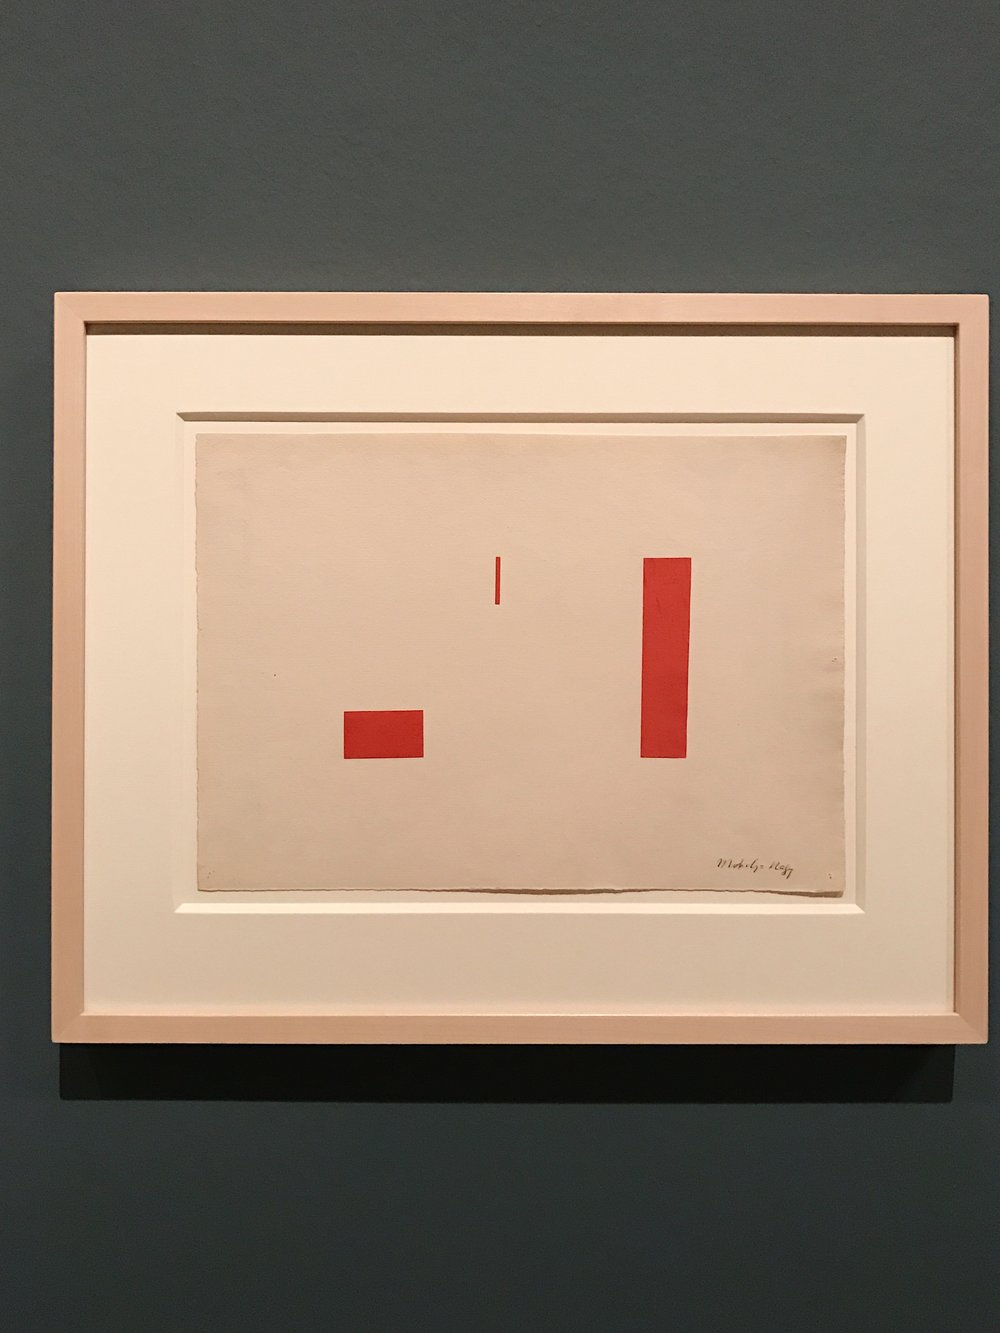 "László Moholy-Nagy, ""F in Field"" 1920 gouche and collage on paper"